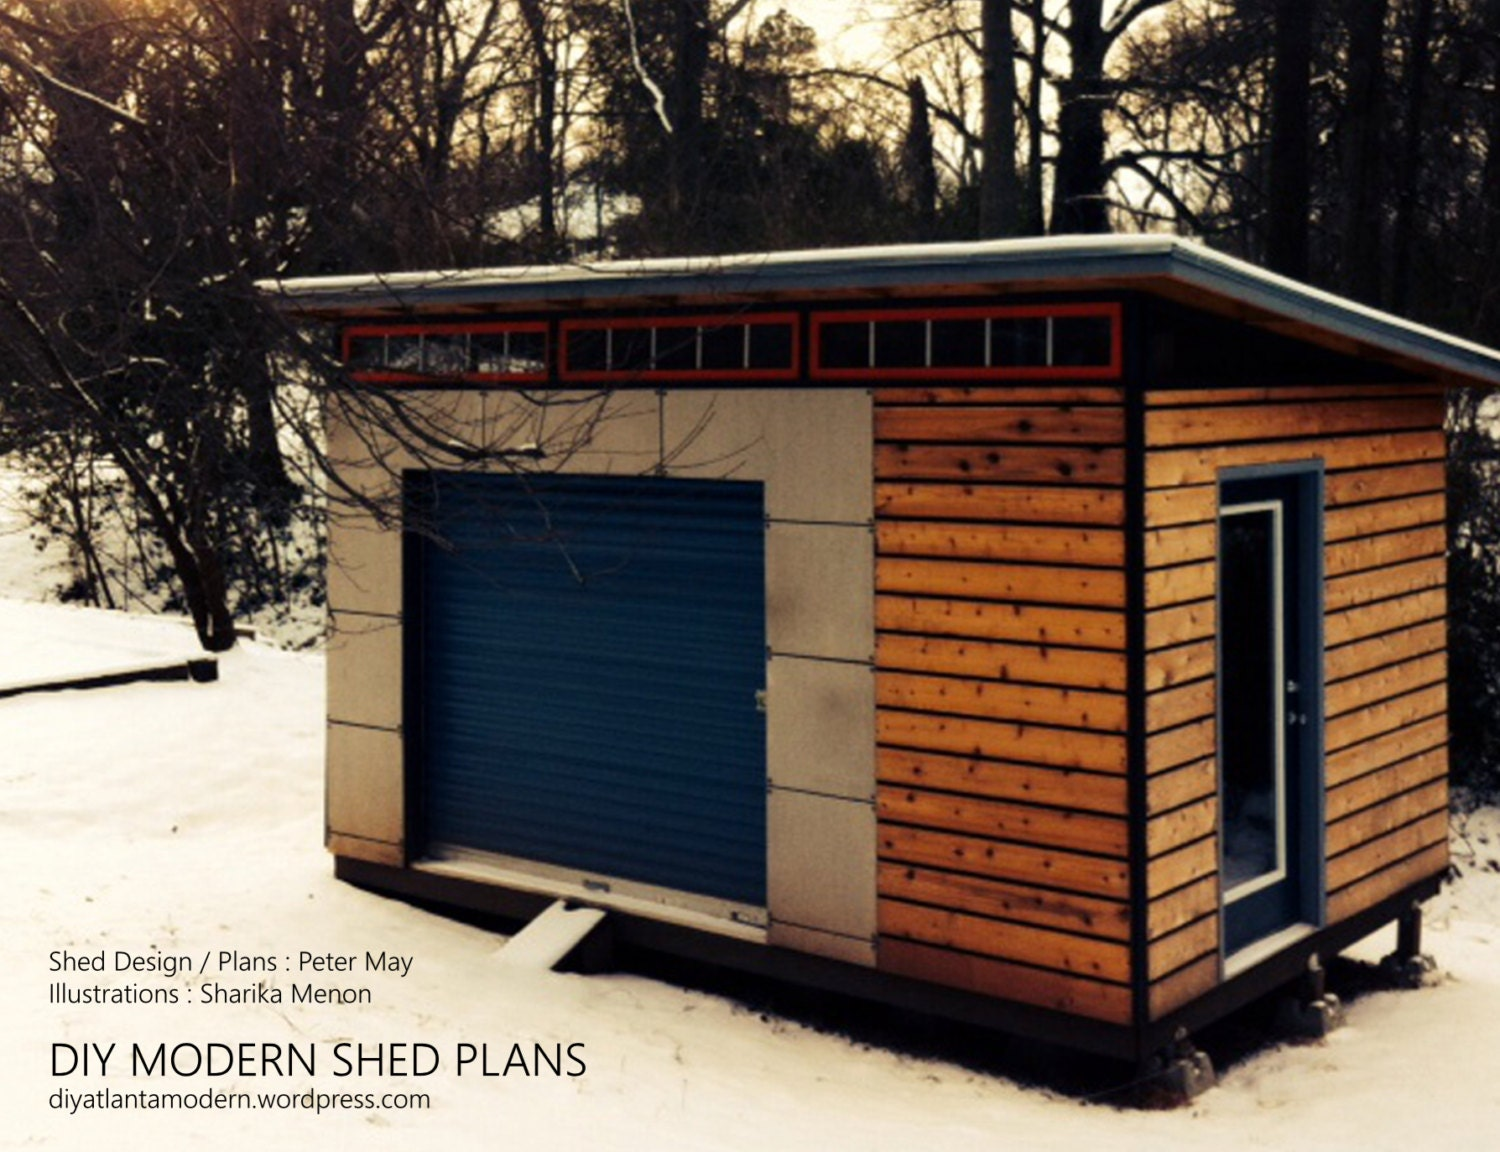 Diy modern shed plans from diyatlantamodern on etsy studio for How to build a modern shed